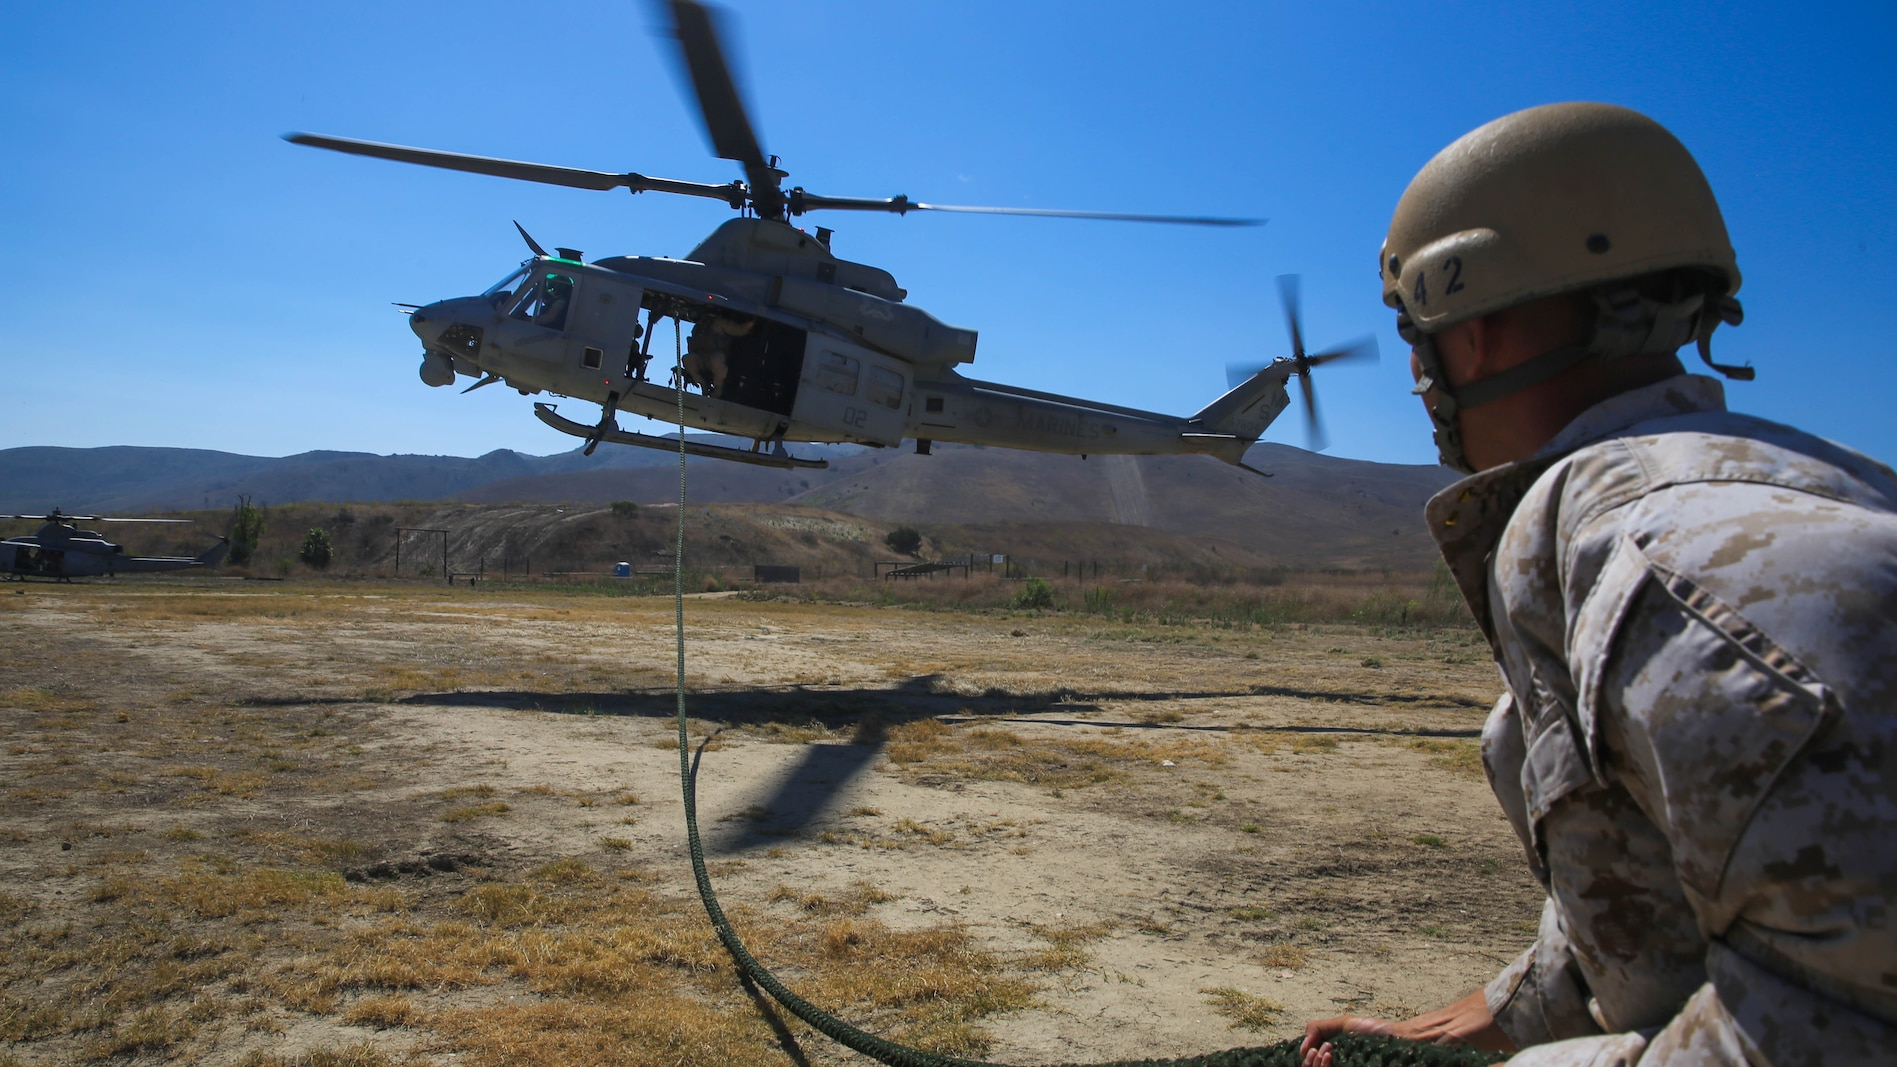 Mechanicsburg, Pa., native Gunnery Sgt. Daniel Young, a platoon sergeant with Company A, 1st Reconnaissance Battalion, 1st Marine Division, I Marine Expeditionary Force, draws a fast-roping line out from underneath a UH-1Y Huey helicopter during a training exercise on Marine Corps Base Camp Pendleton, Calif., Aug. 18, 2015. Utilizing both fast-roping and Special Patrol Insertion and Extraction rigging methods, the purpose of the training exercise was to integrate operational coordination between the I MEF Ground Combat Element and Air Combat Element.